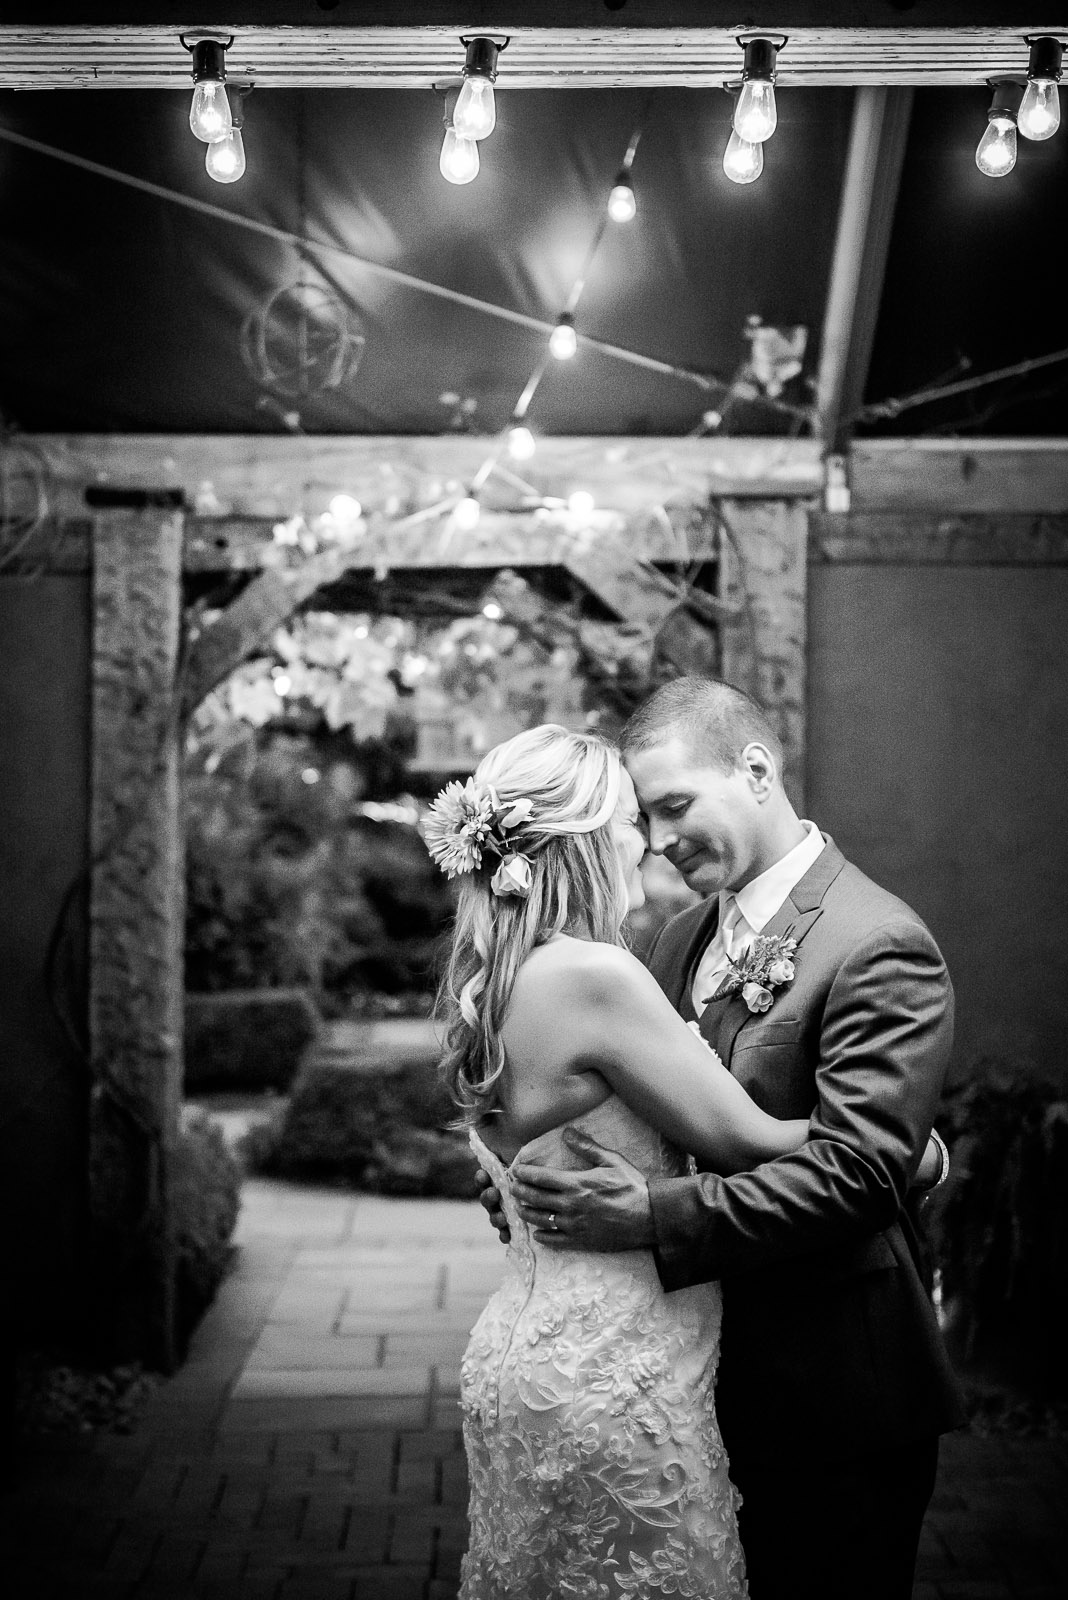 Eric_and_Christy_Photography_Blog_2016_Best_Wedding_Moments-16